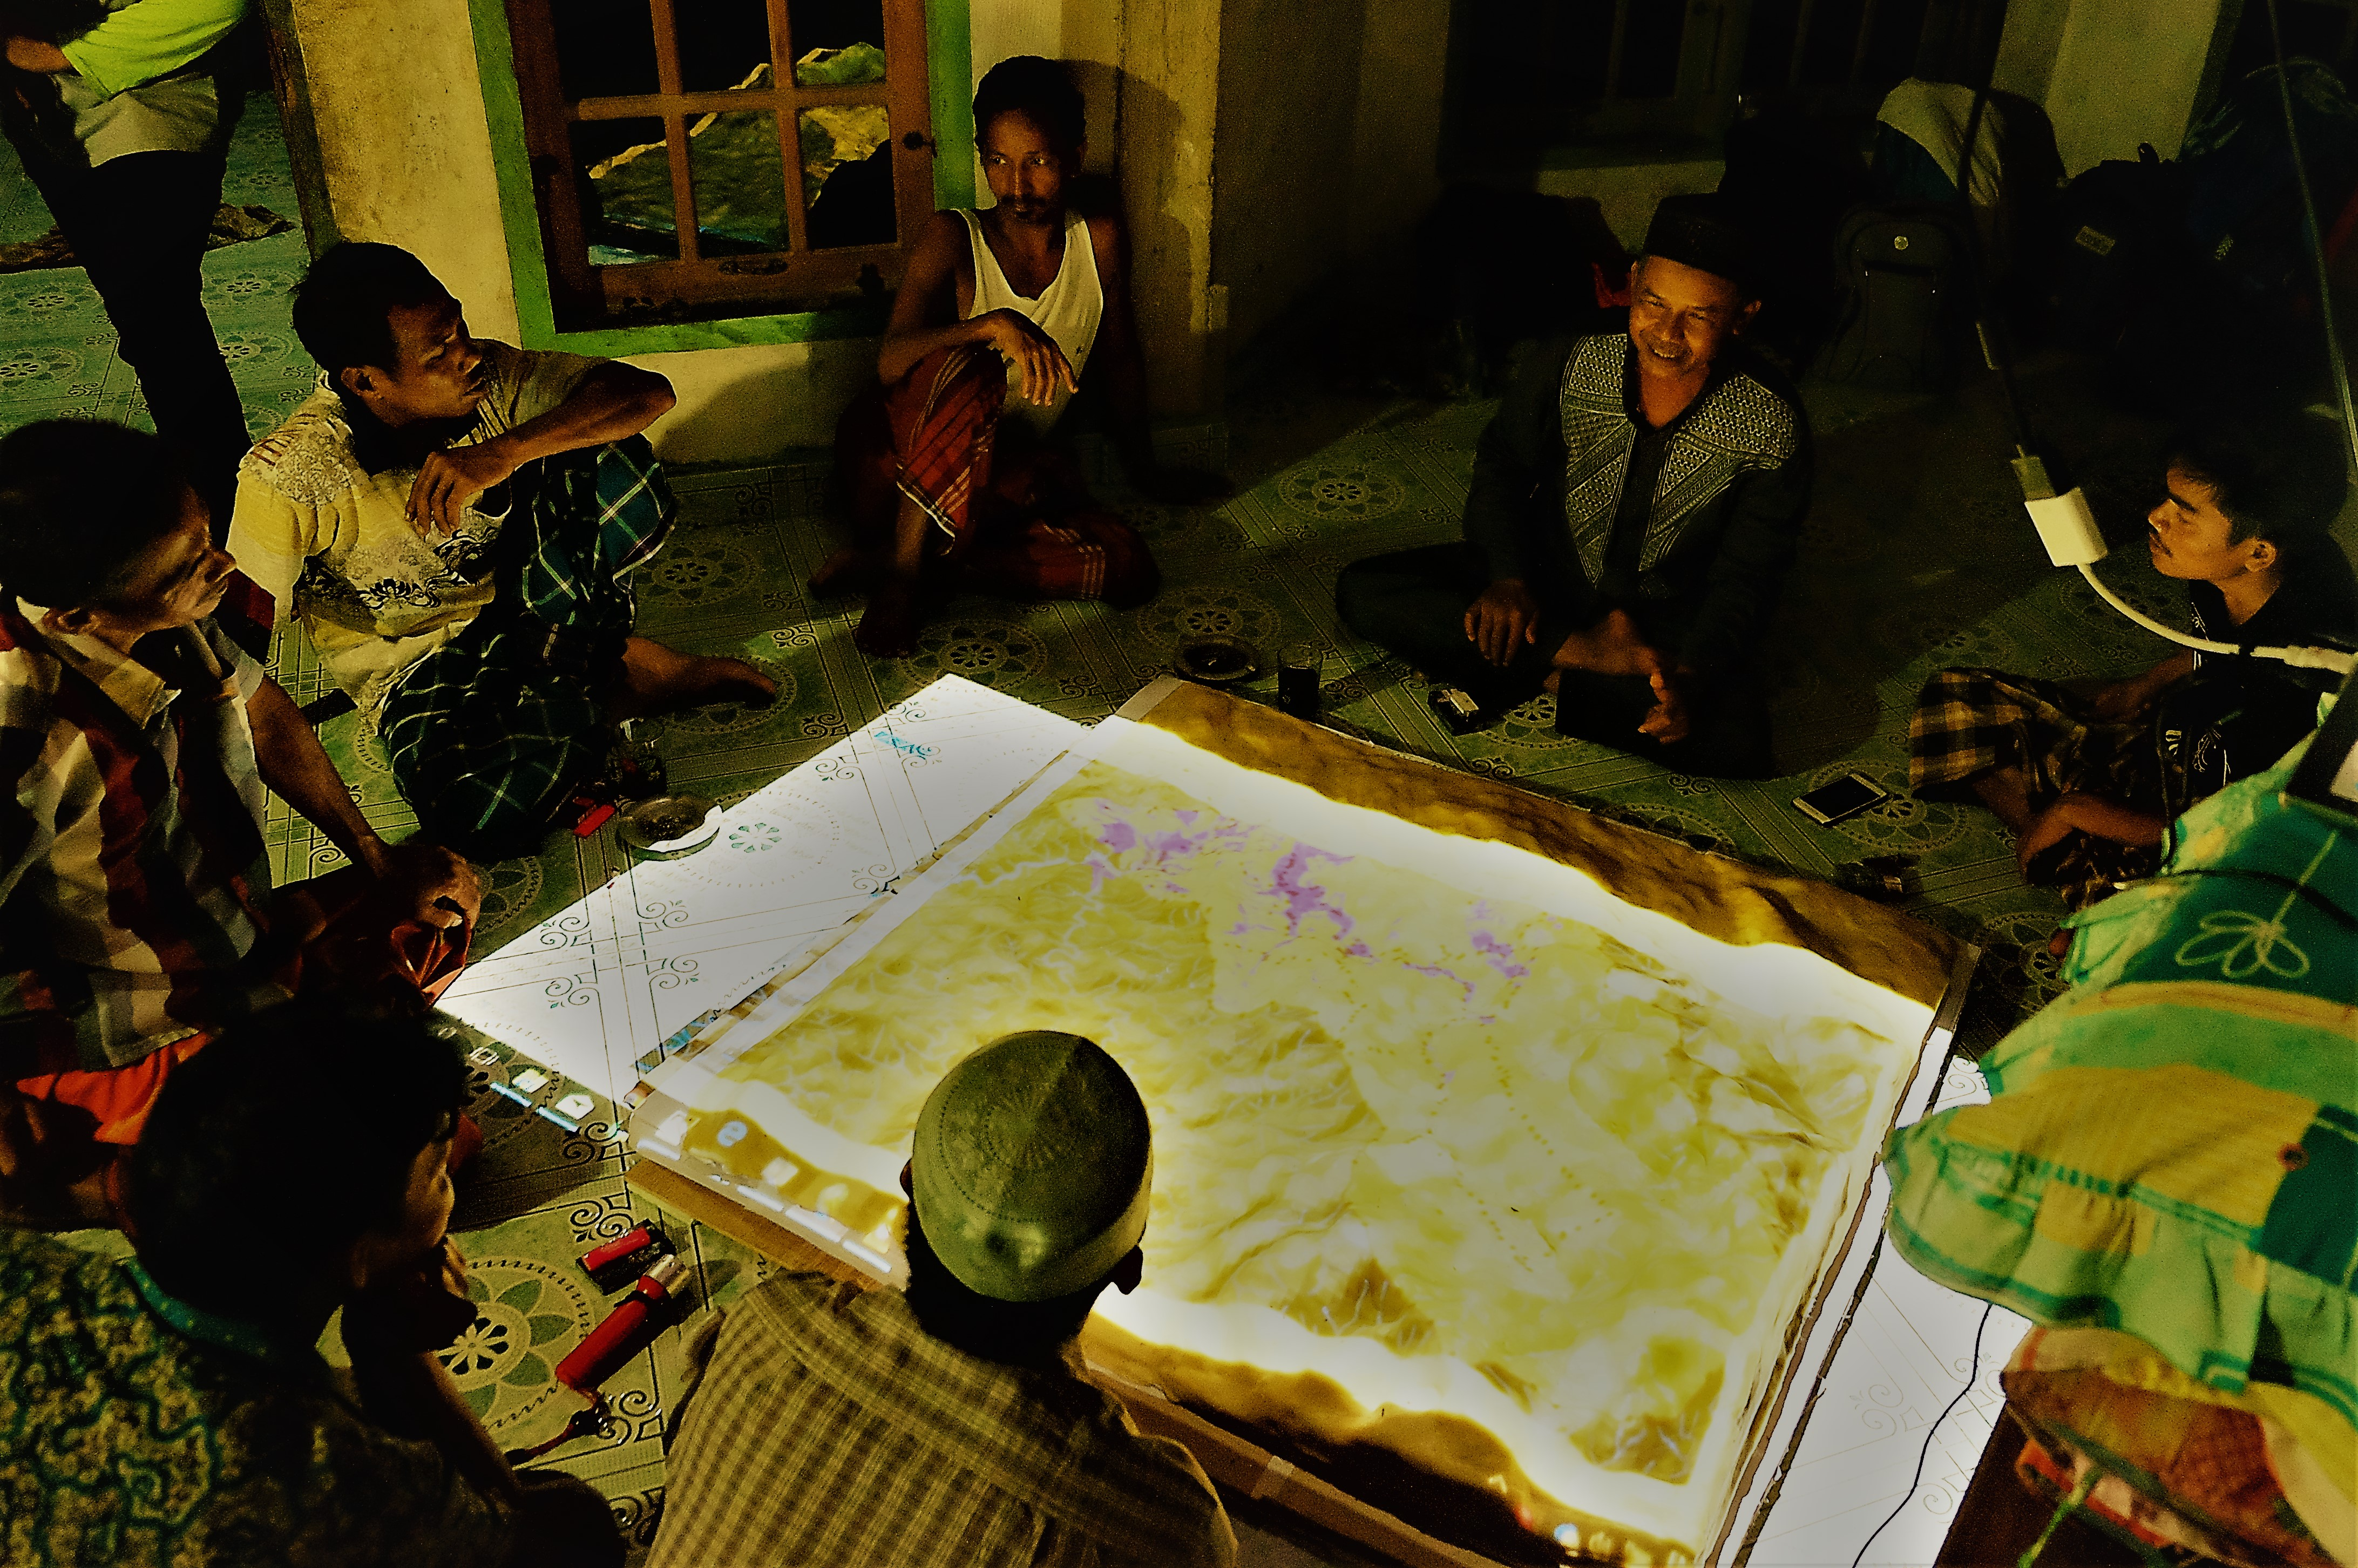 <p> Indigenous people in Gajah Bertalut, Kampar, Riau, observing 3D map models of their tribal lands. Photo by Julius Lawalata.</p>